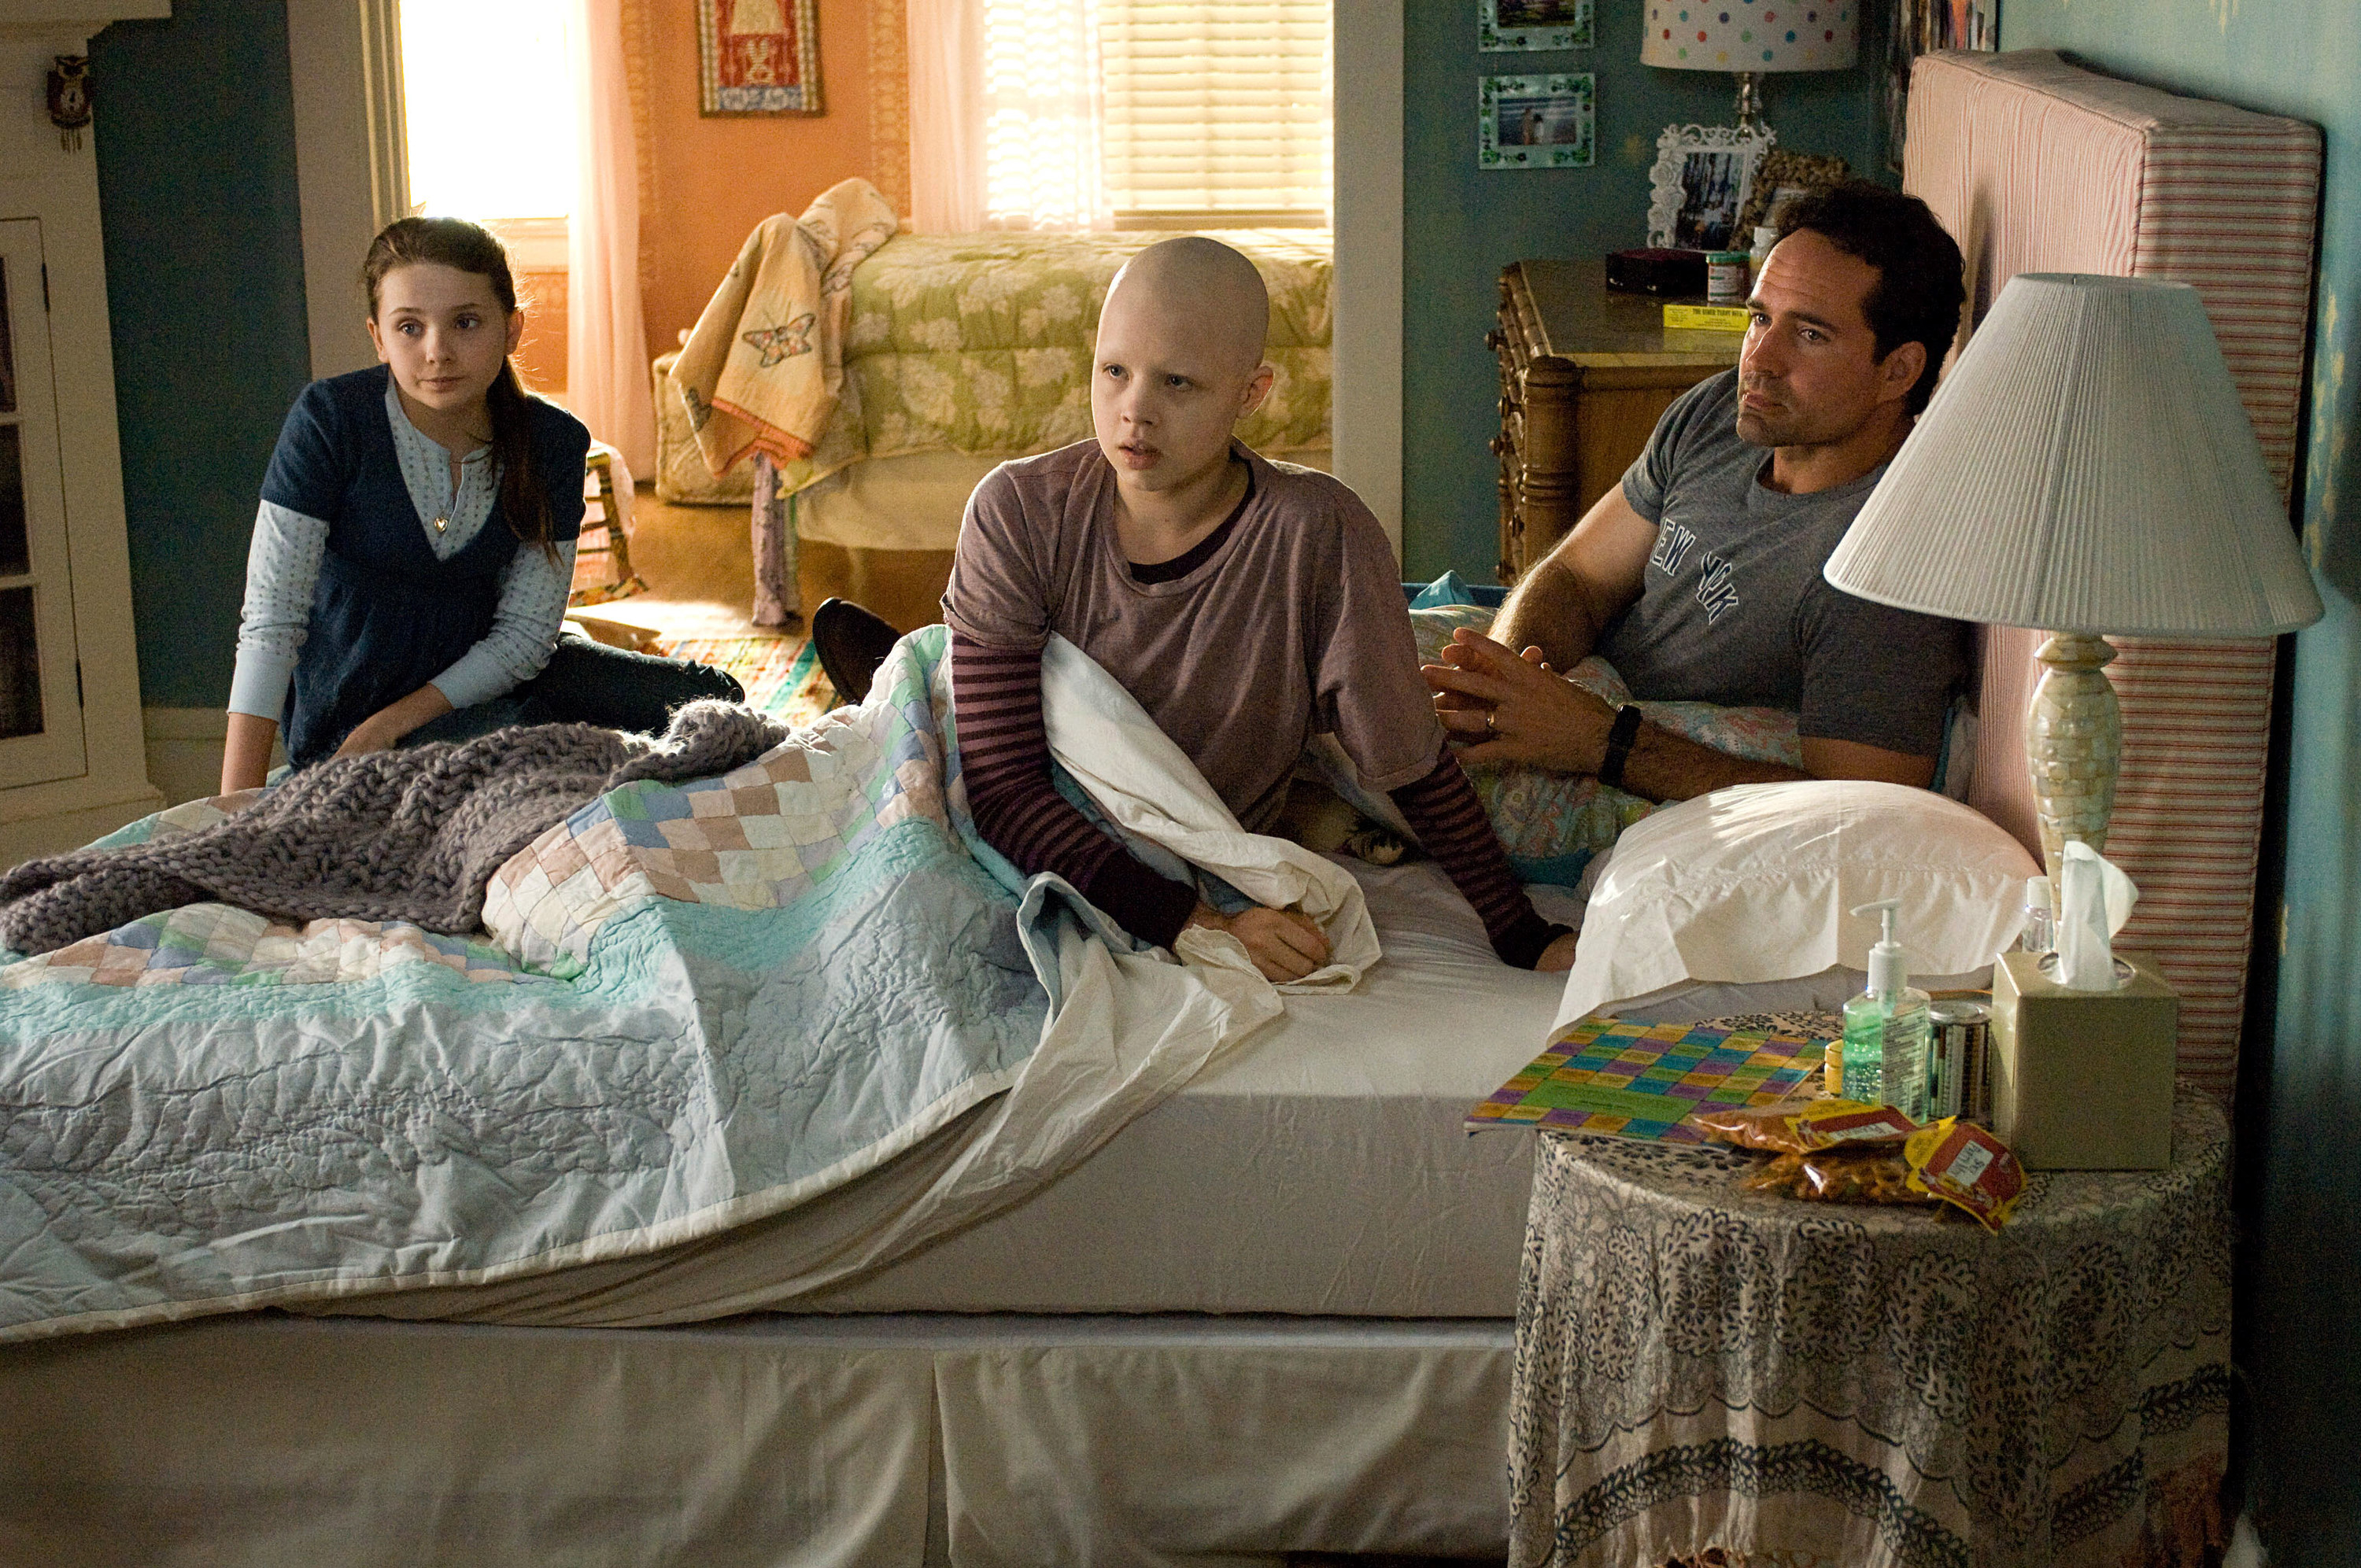 An adult, a child with cancer, and another child sit on a bed